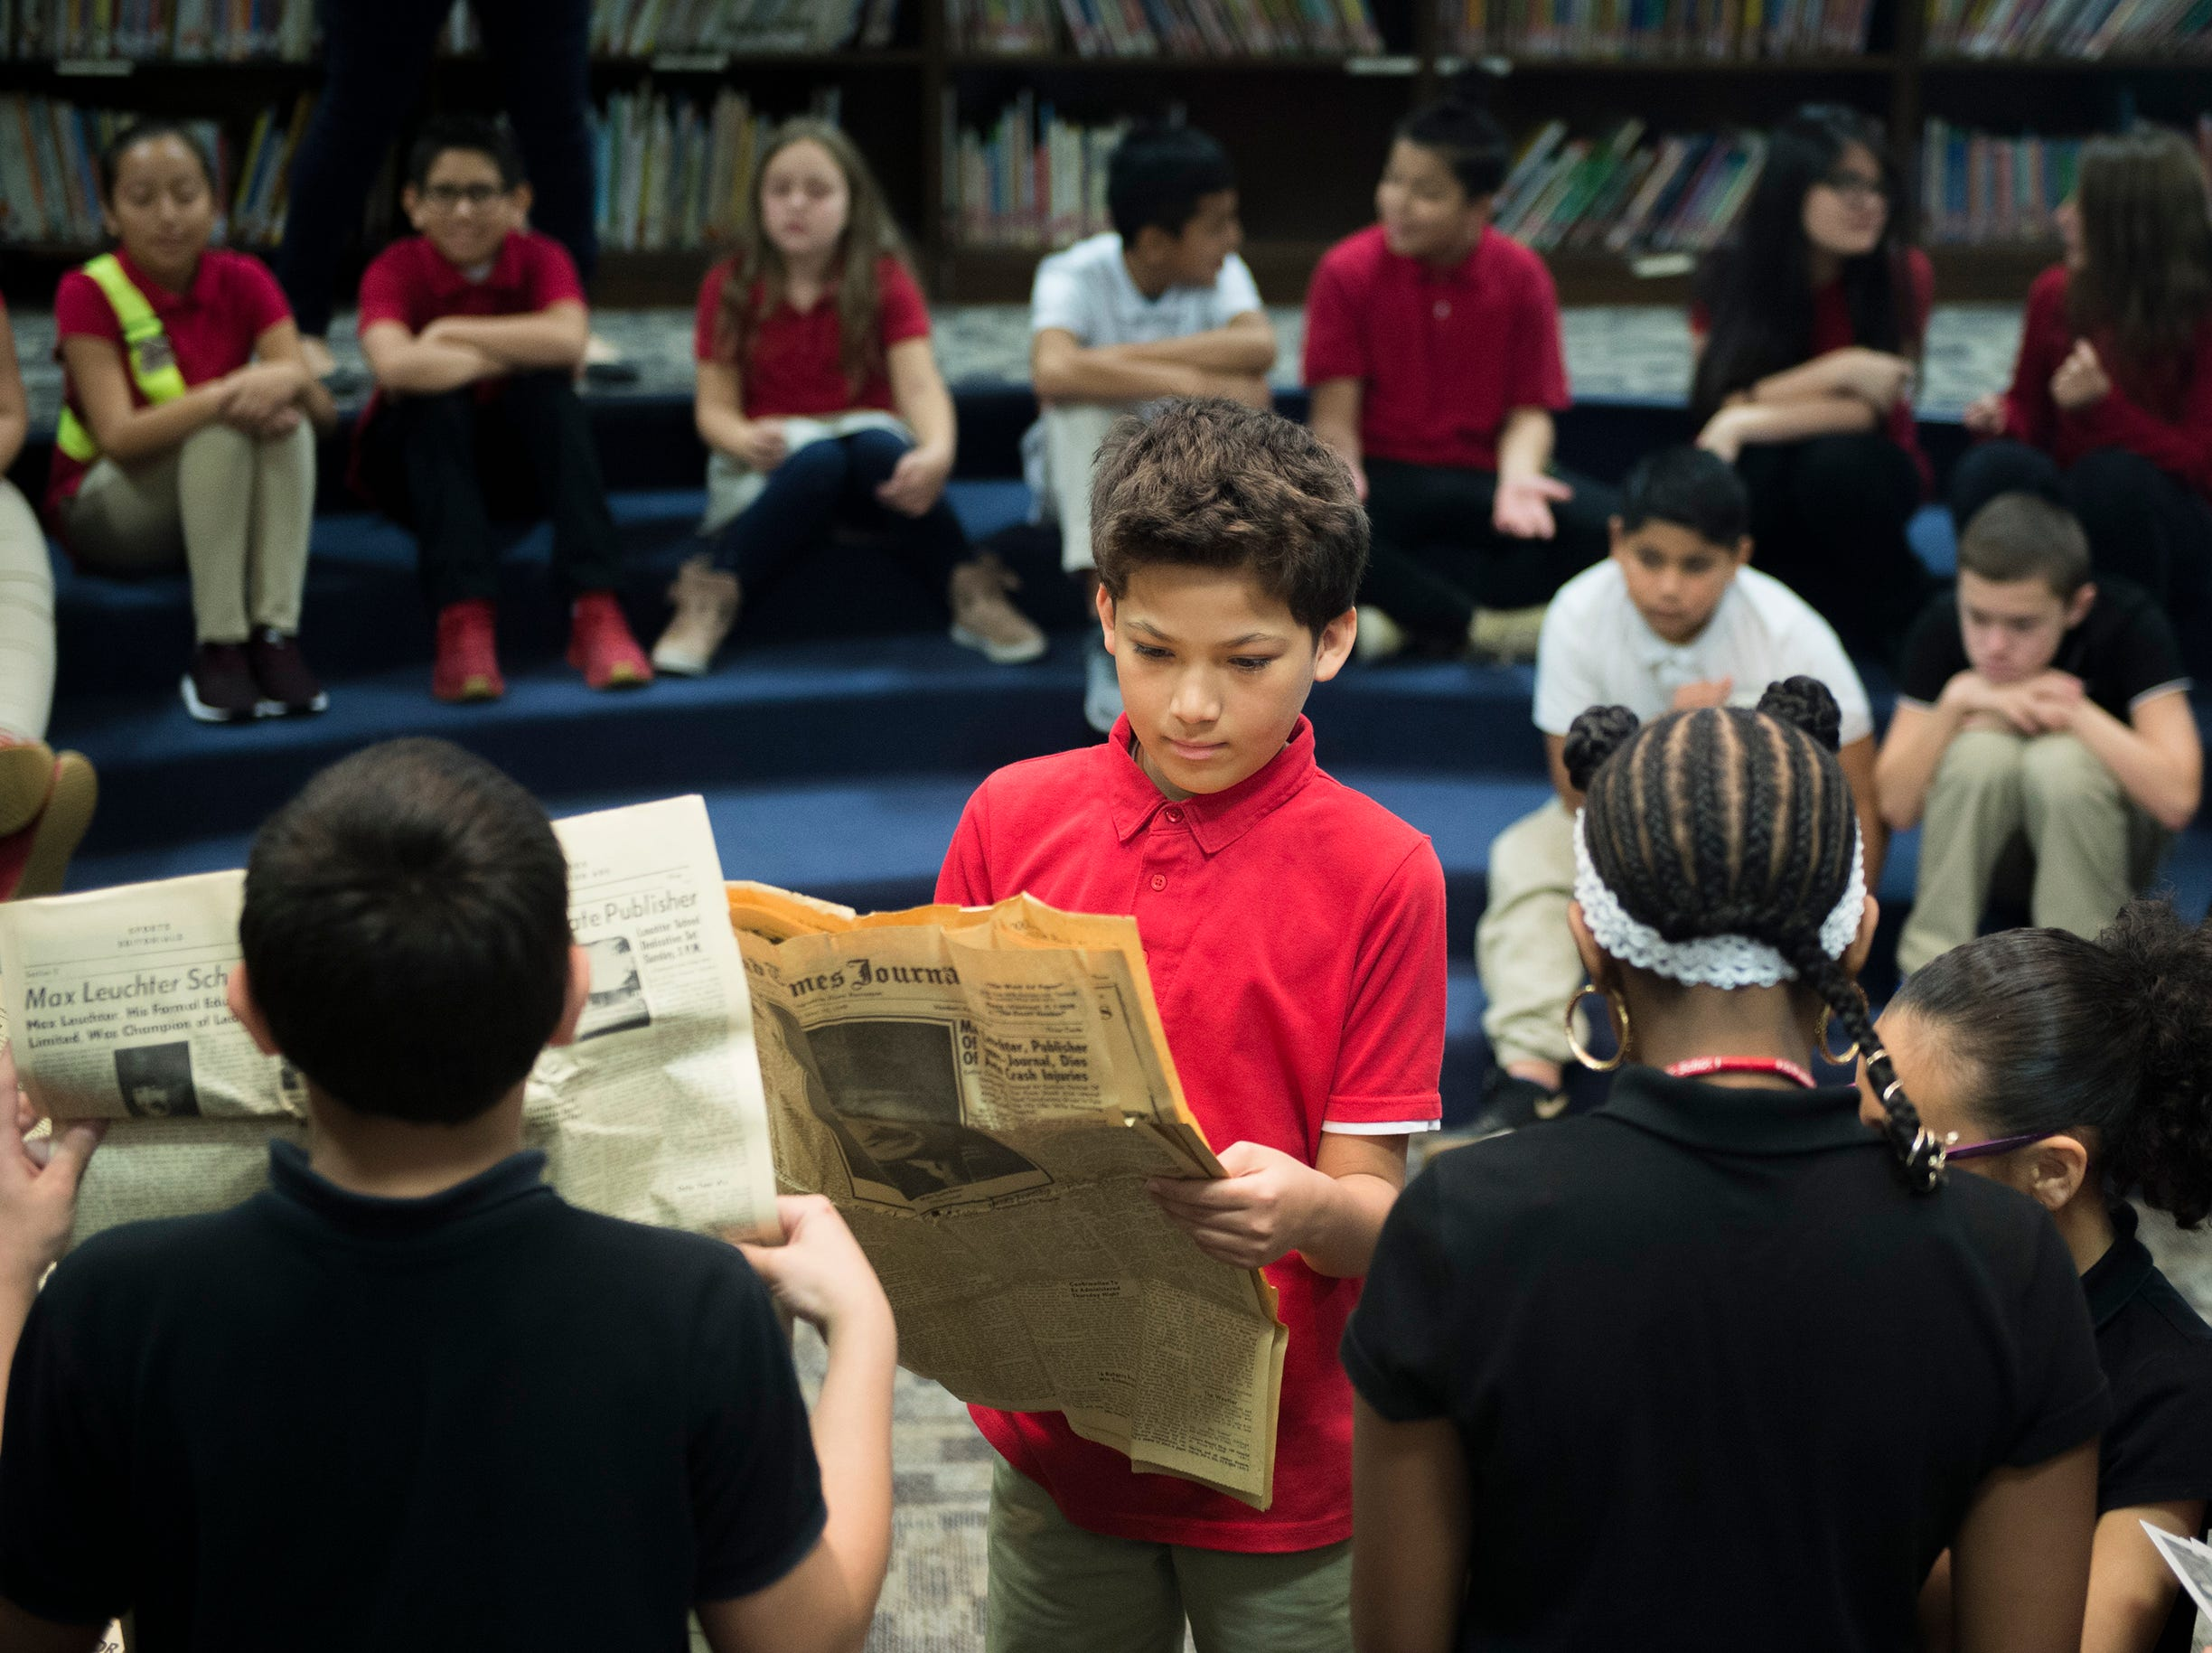 Students look over the contents of a time capsule from 1956 at Marie Durand Elementary School Monday, Dec. 3, 2018 in Vineland, N.J.